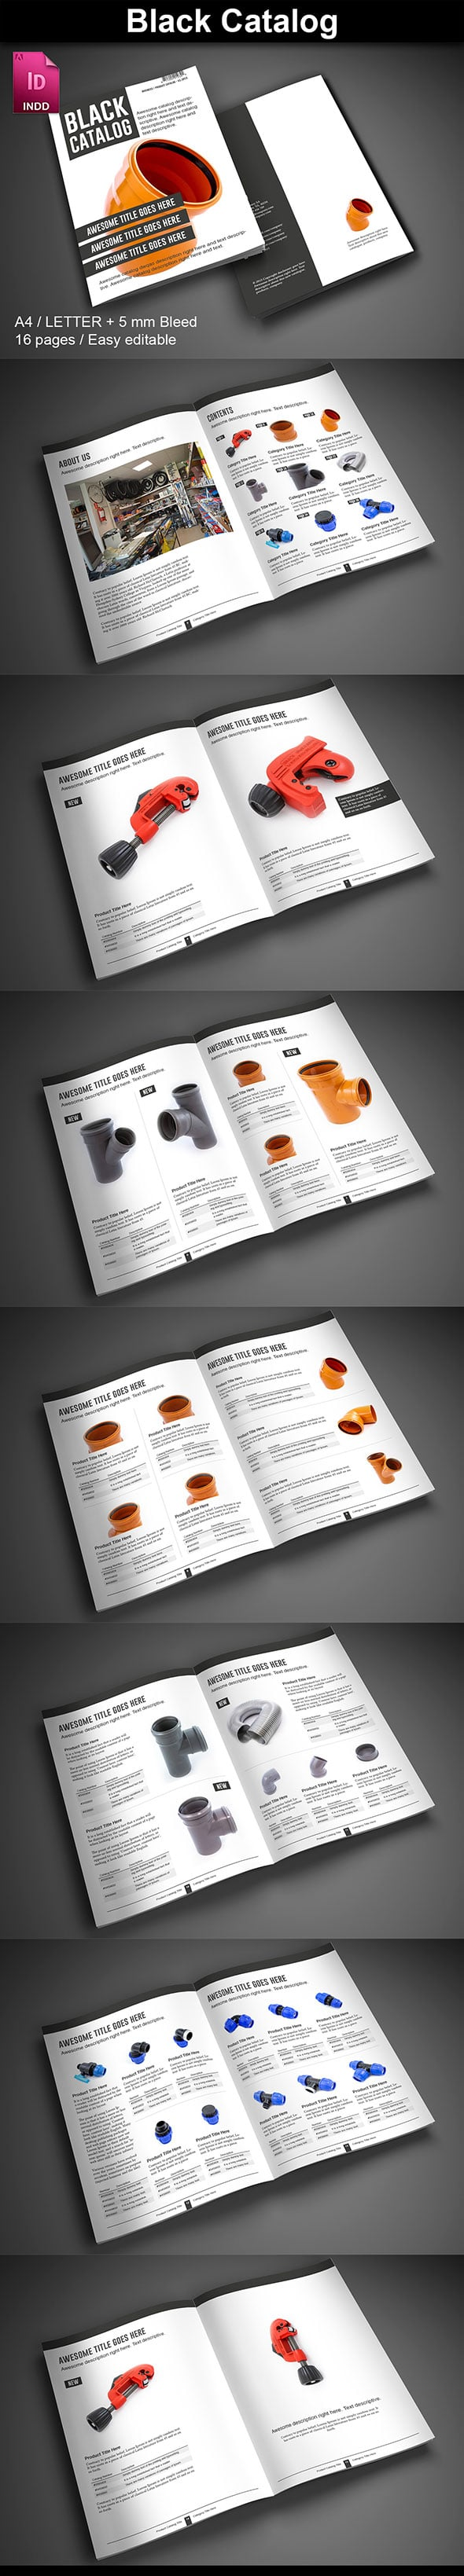 15  InDesign Product Catalogs - just $19 - 04 BlackCatalog ImagePreview2